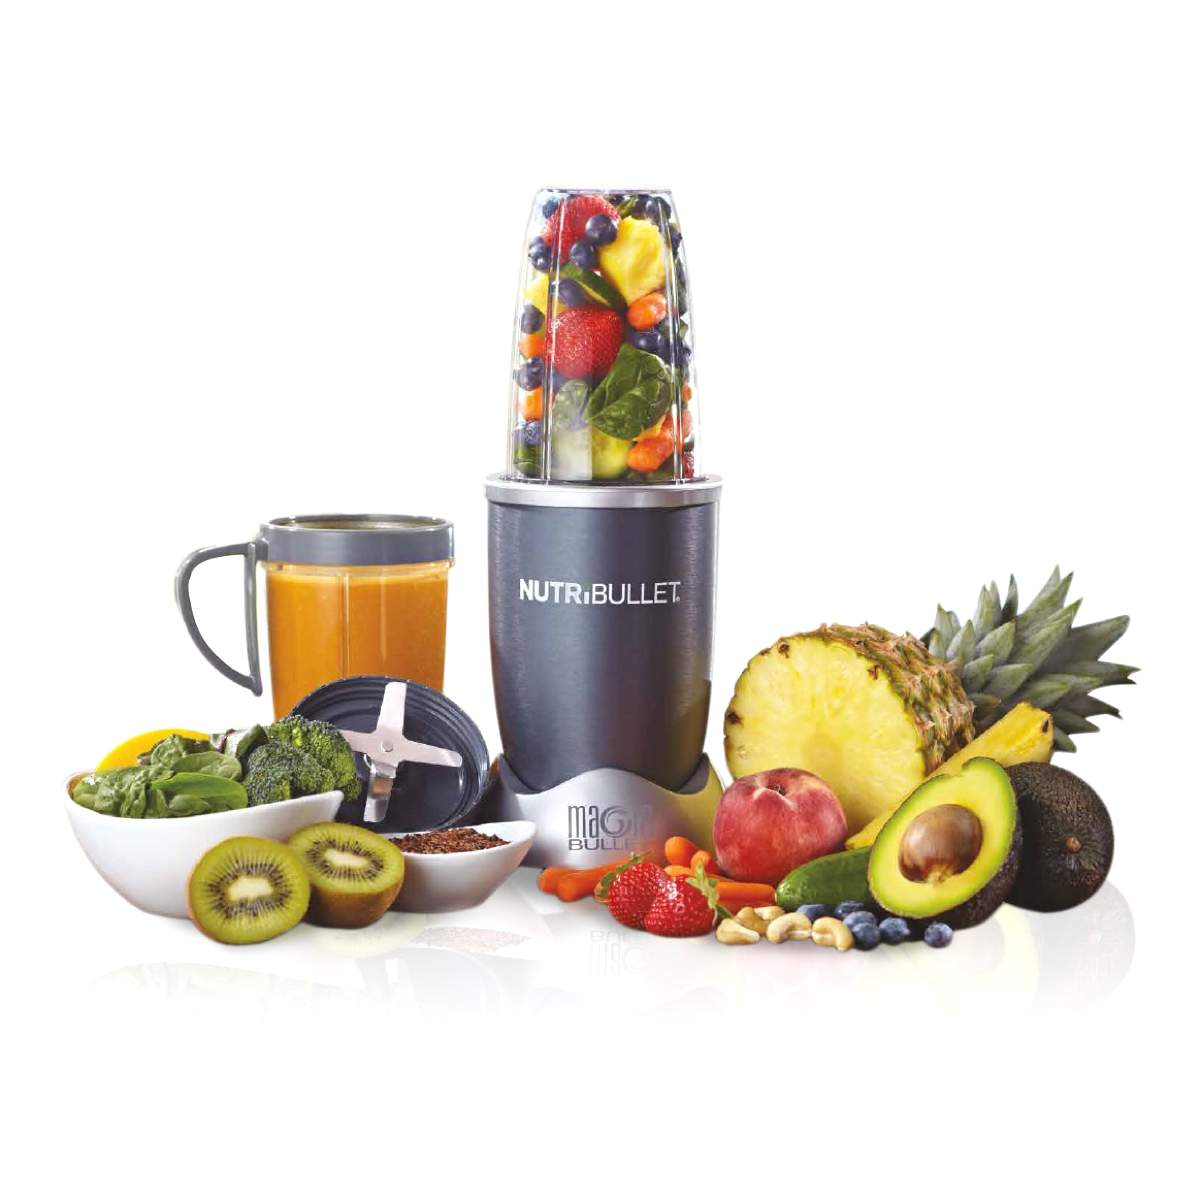 Nutribullet at TWS £99.95